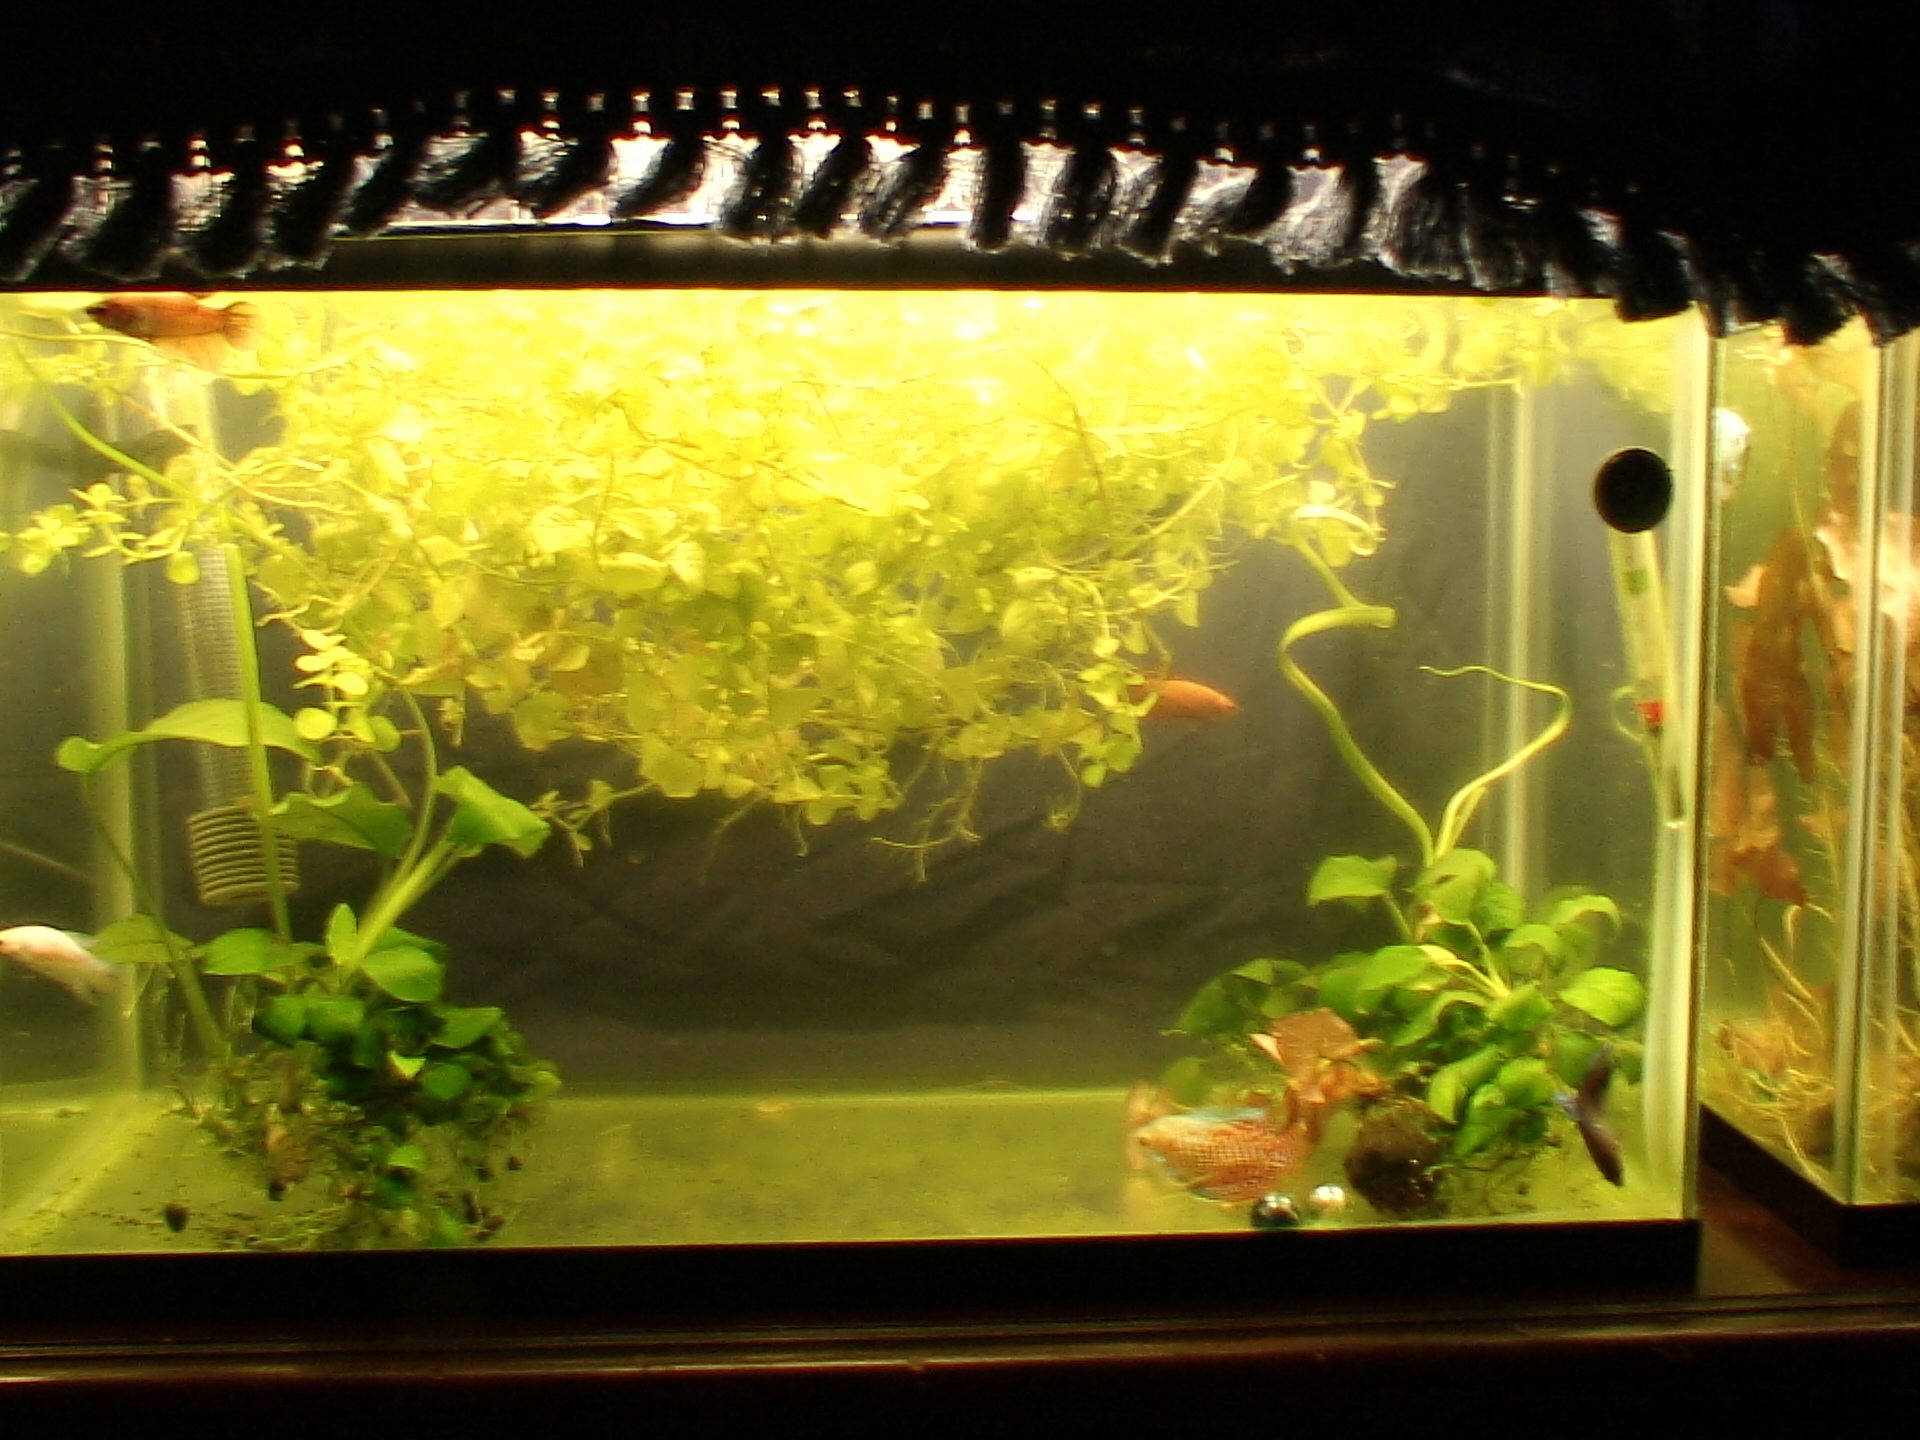 Freshwater fish no filter -  20150728 No Substrate Or Filter Or Air 006